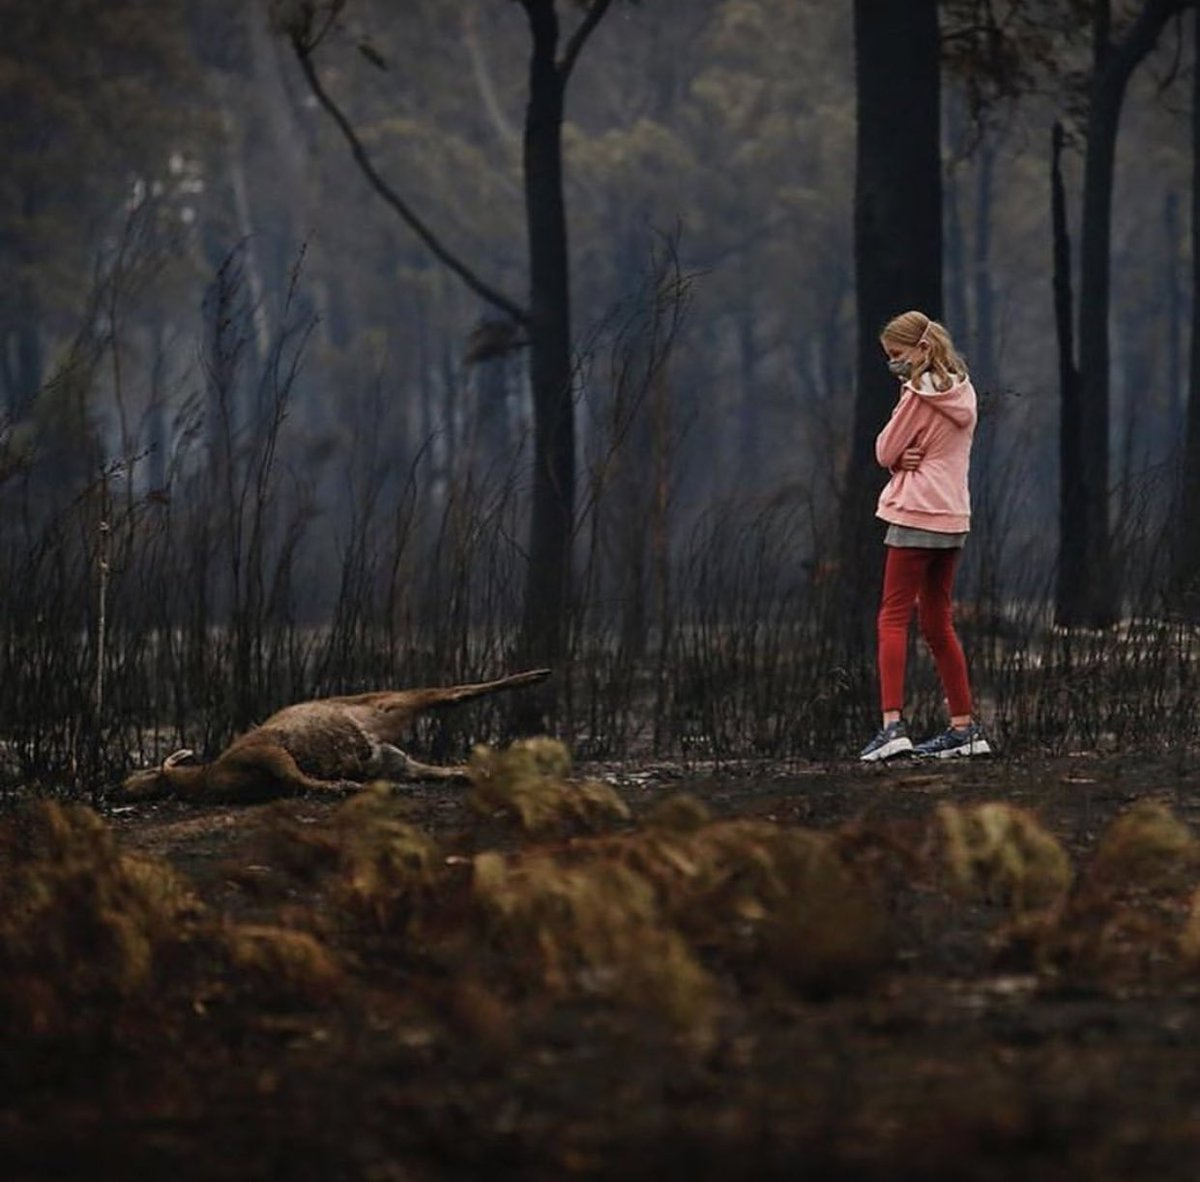 💔😢My Heart goes out to the families who have lost loved ones, homes, everything! Half a Billion Animals have died in the fires..😔 #GodBlessAustralia 🙏🏽🇦🇺 https://t.co/5m6rEQzn9u